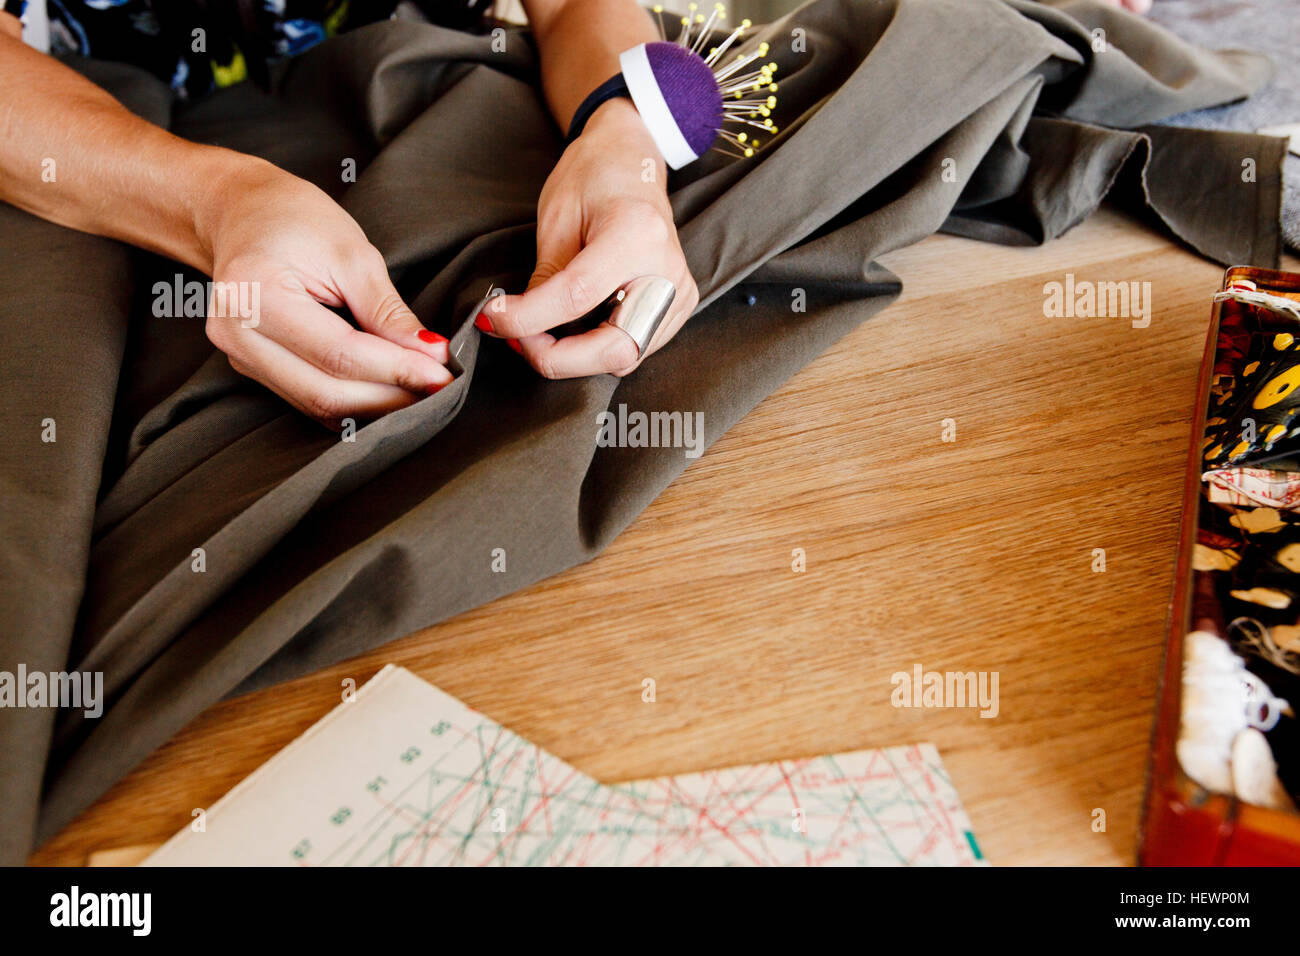 Cropped view of seamstress pinning fabric - Stock Image